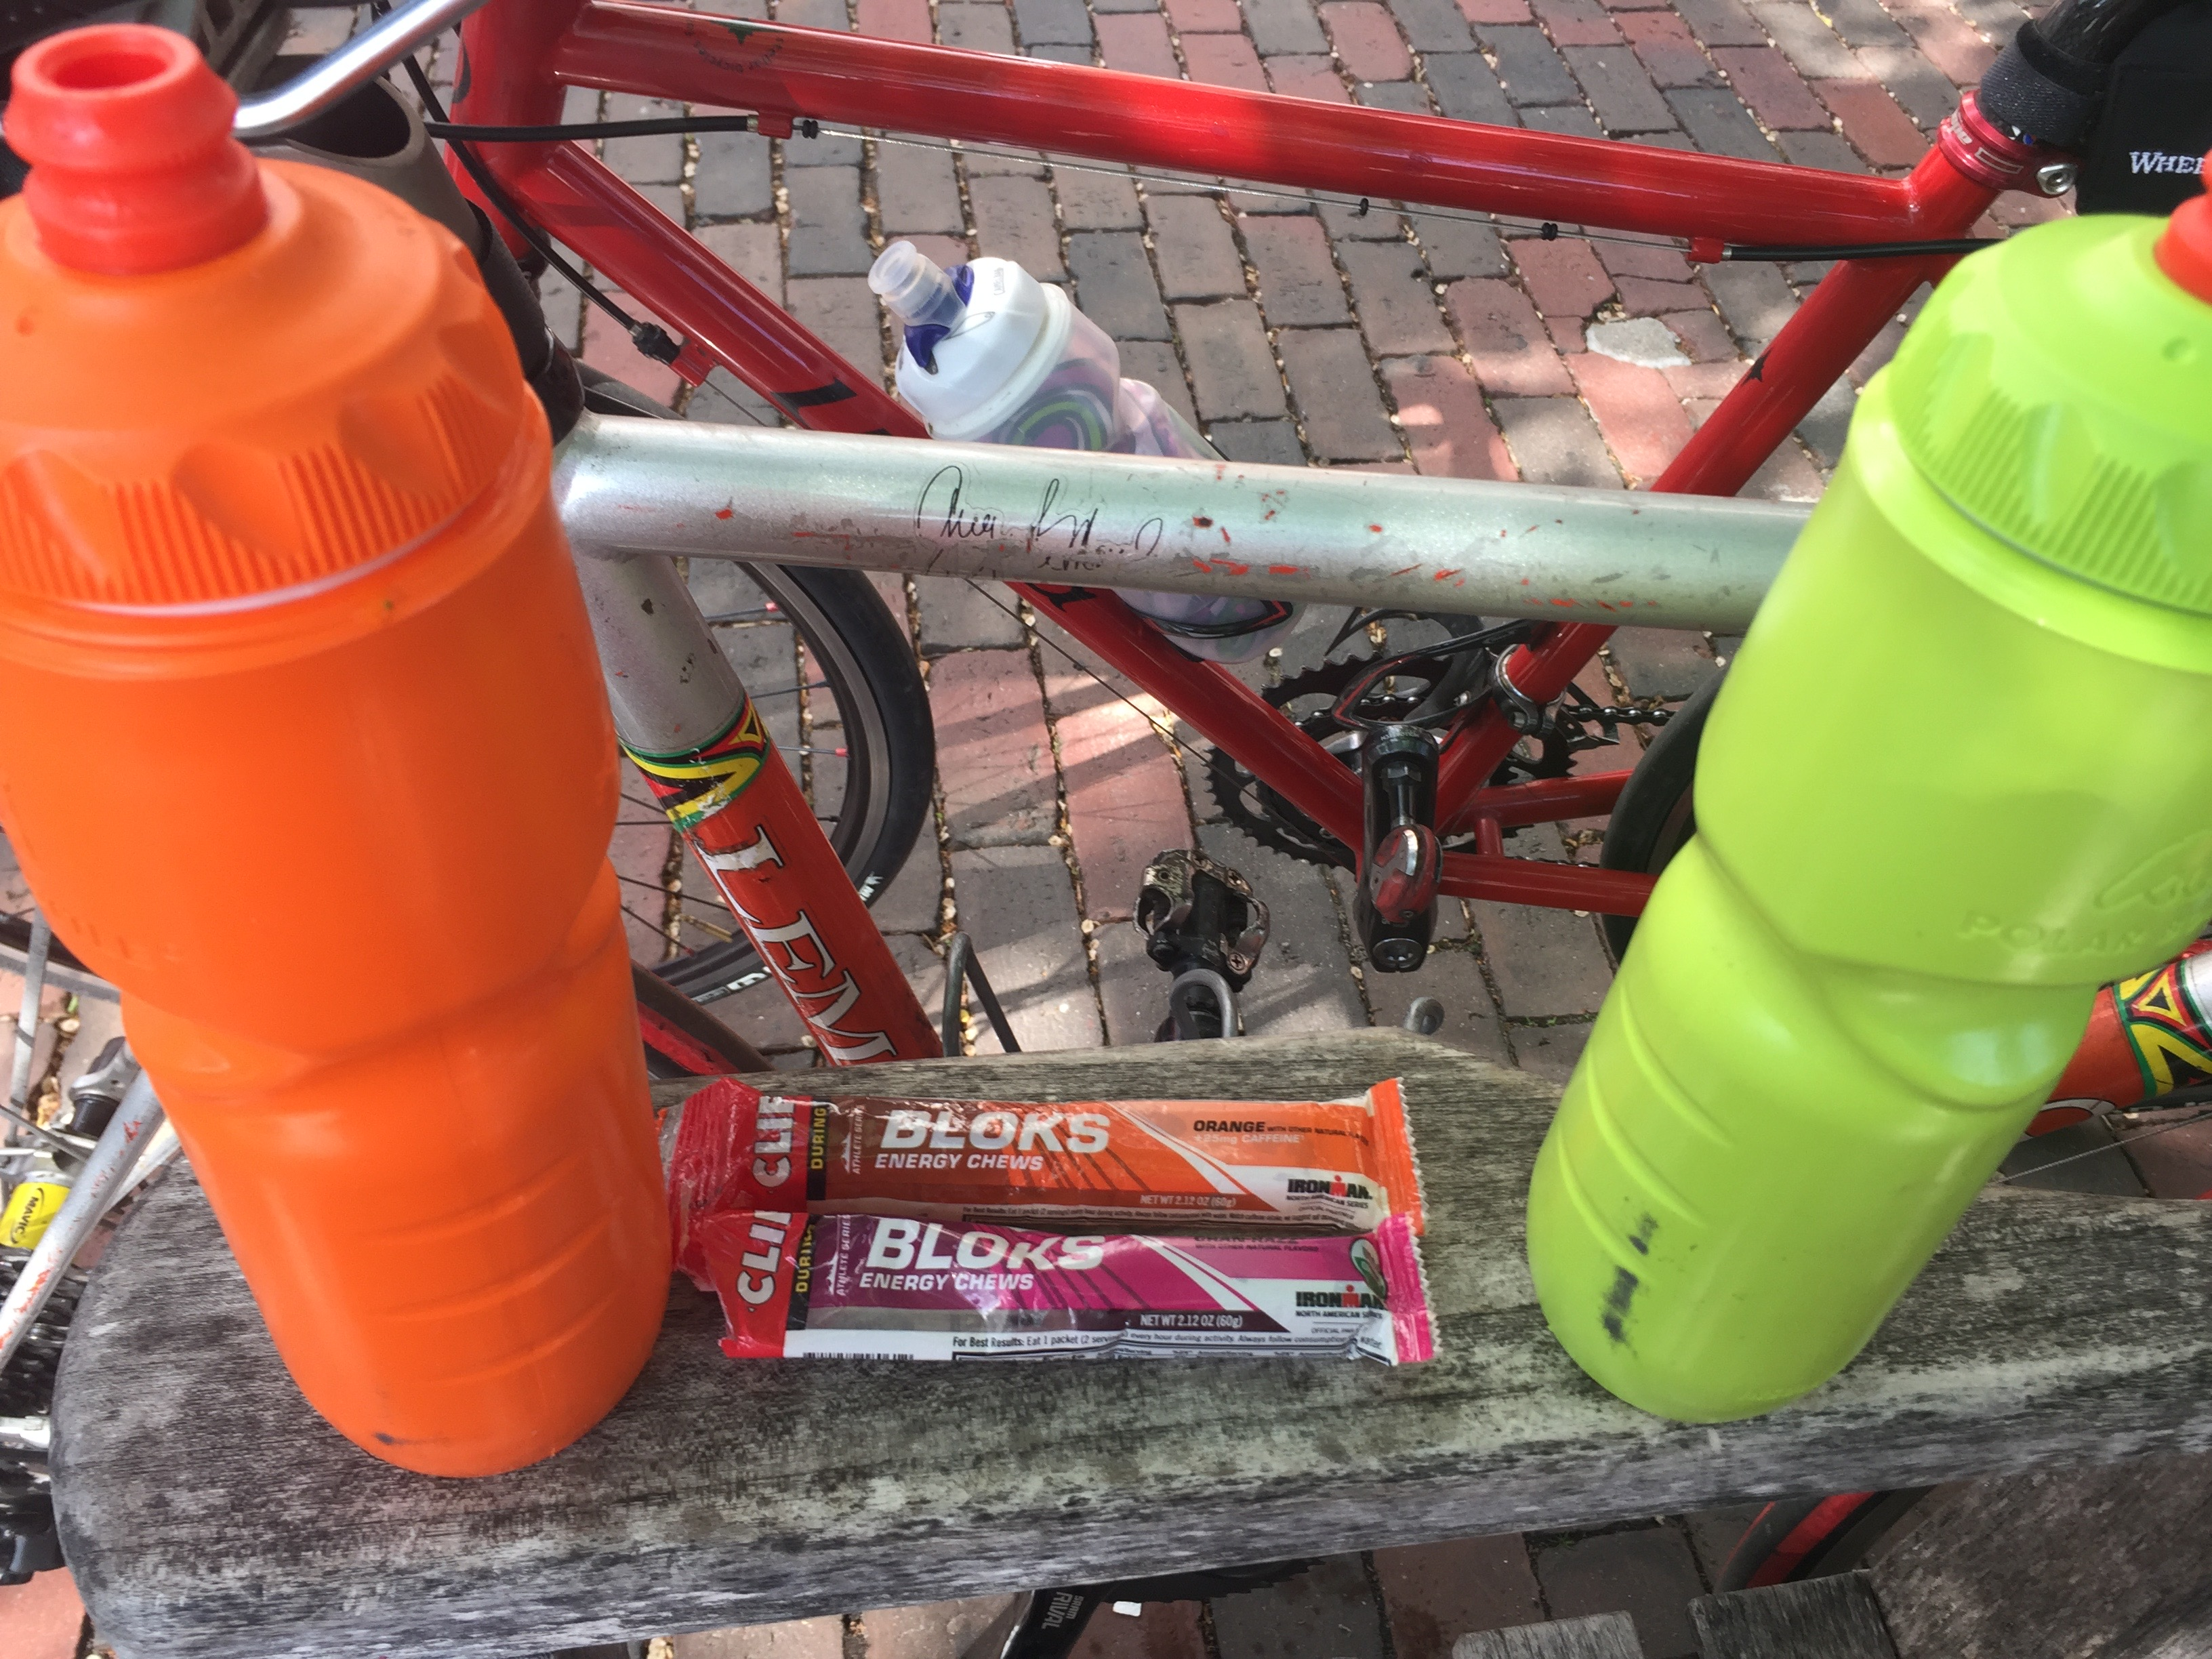 My two bike bottles (with orange gatorade) flanking two packs of clif shot bloks. The bikes are still waiting.